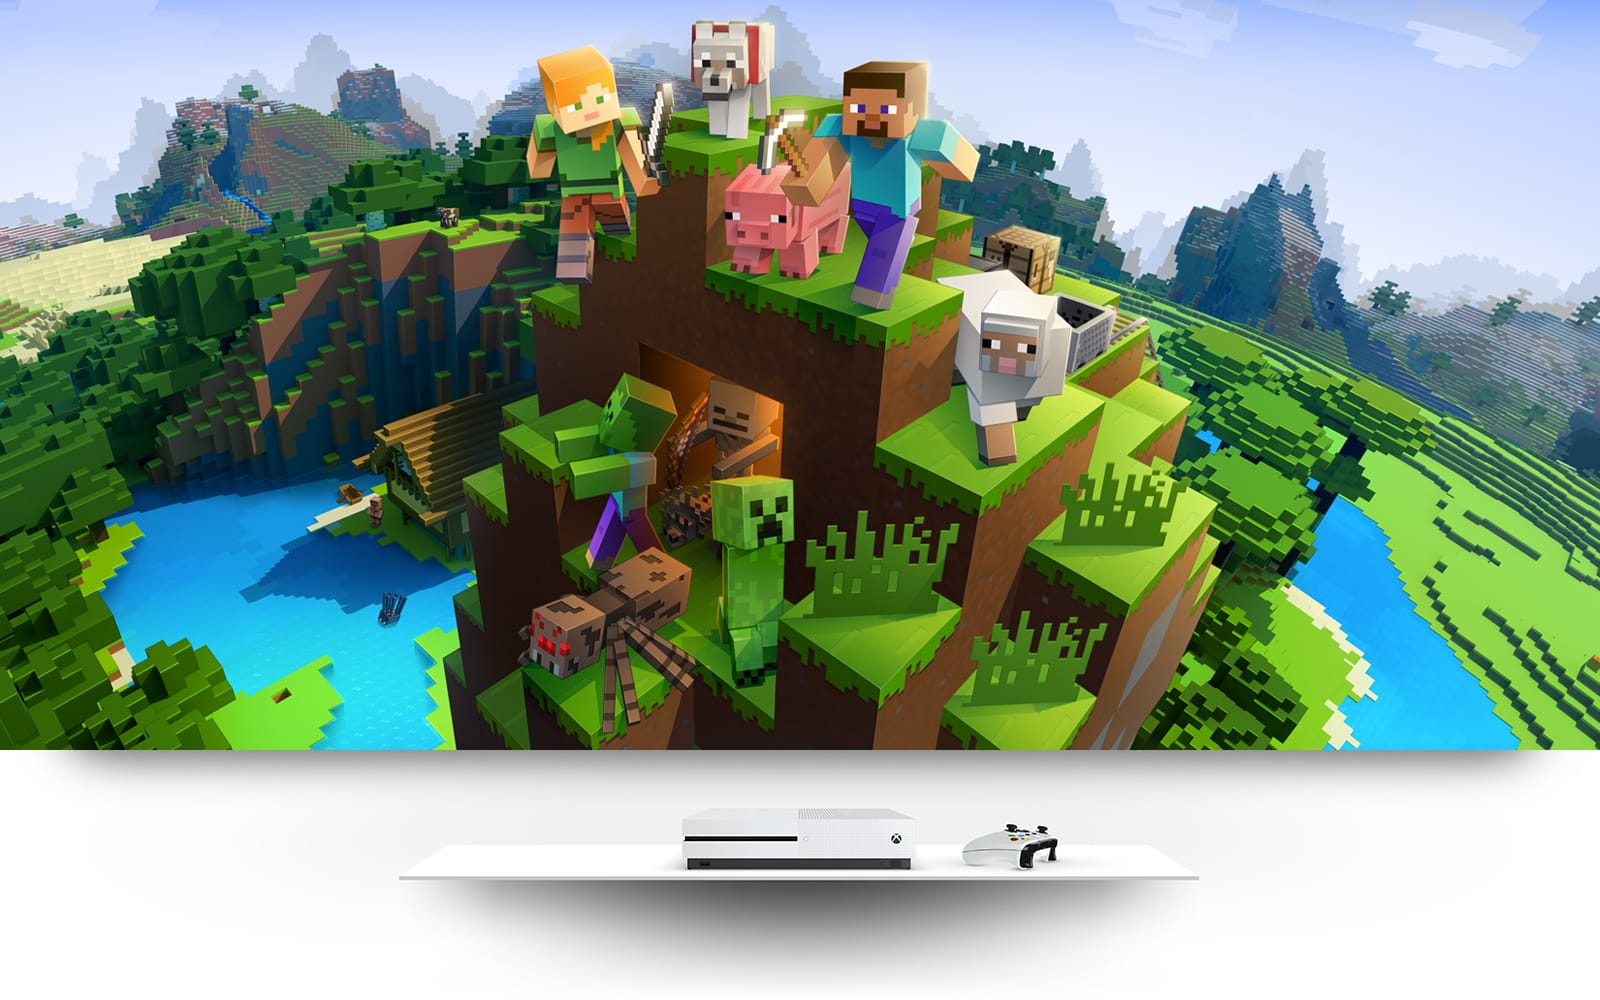 Minecraft World com habitantes